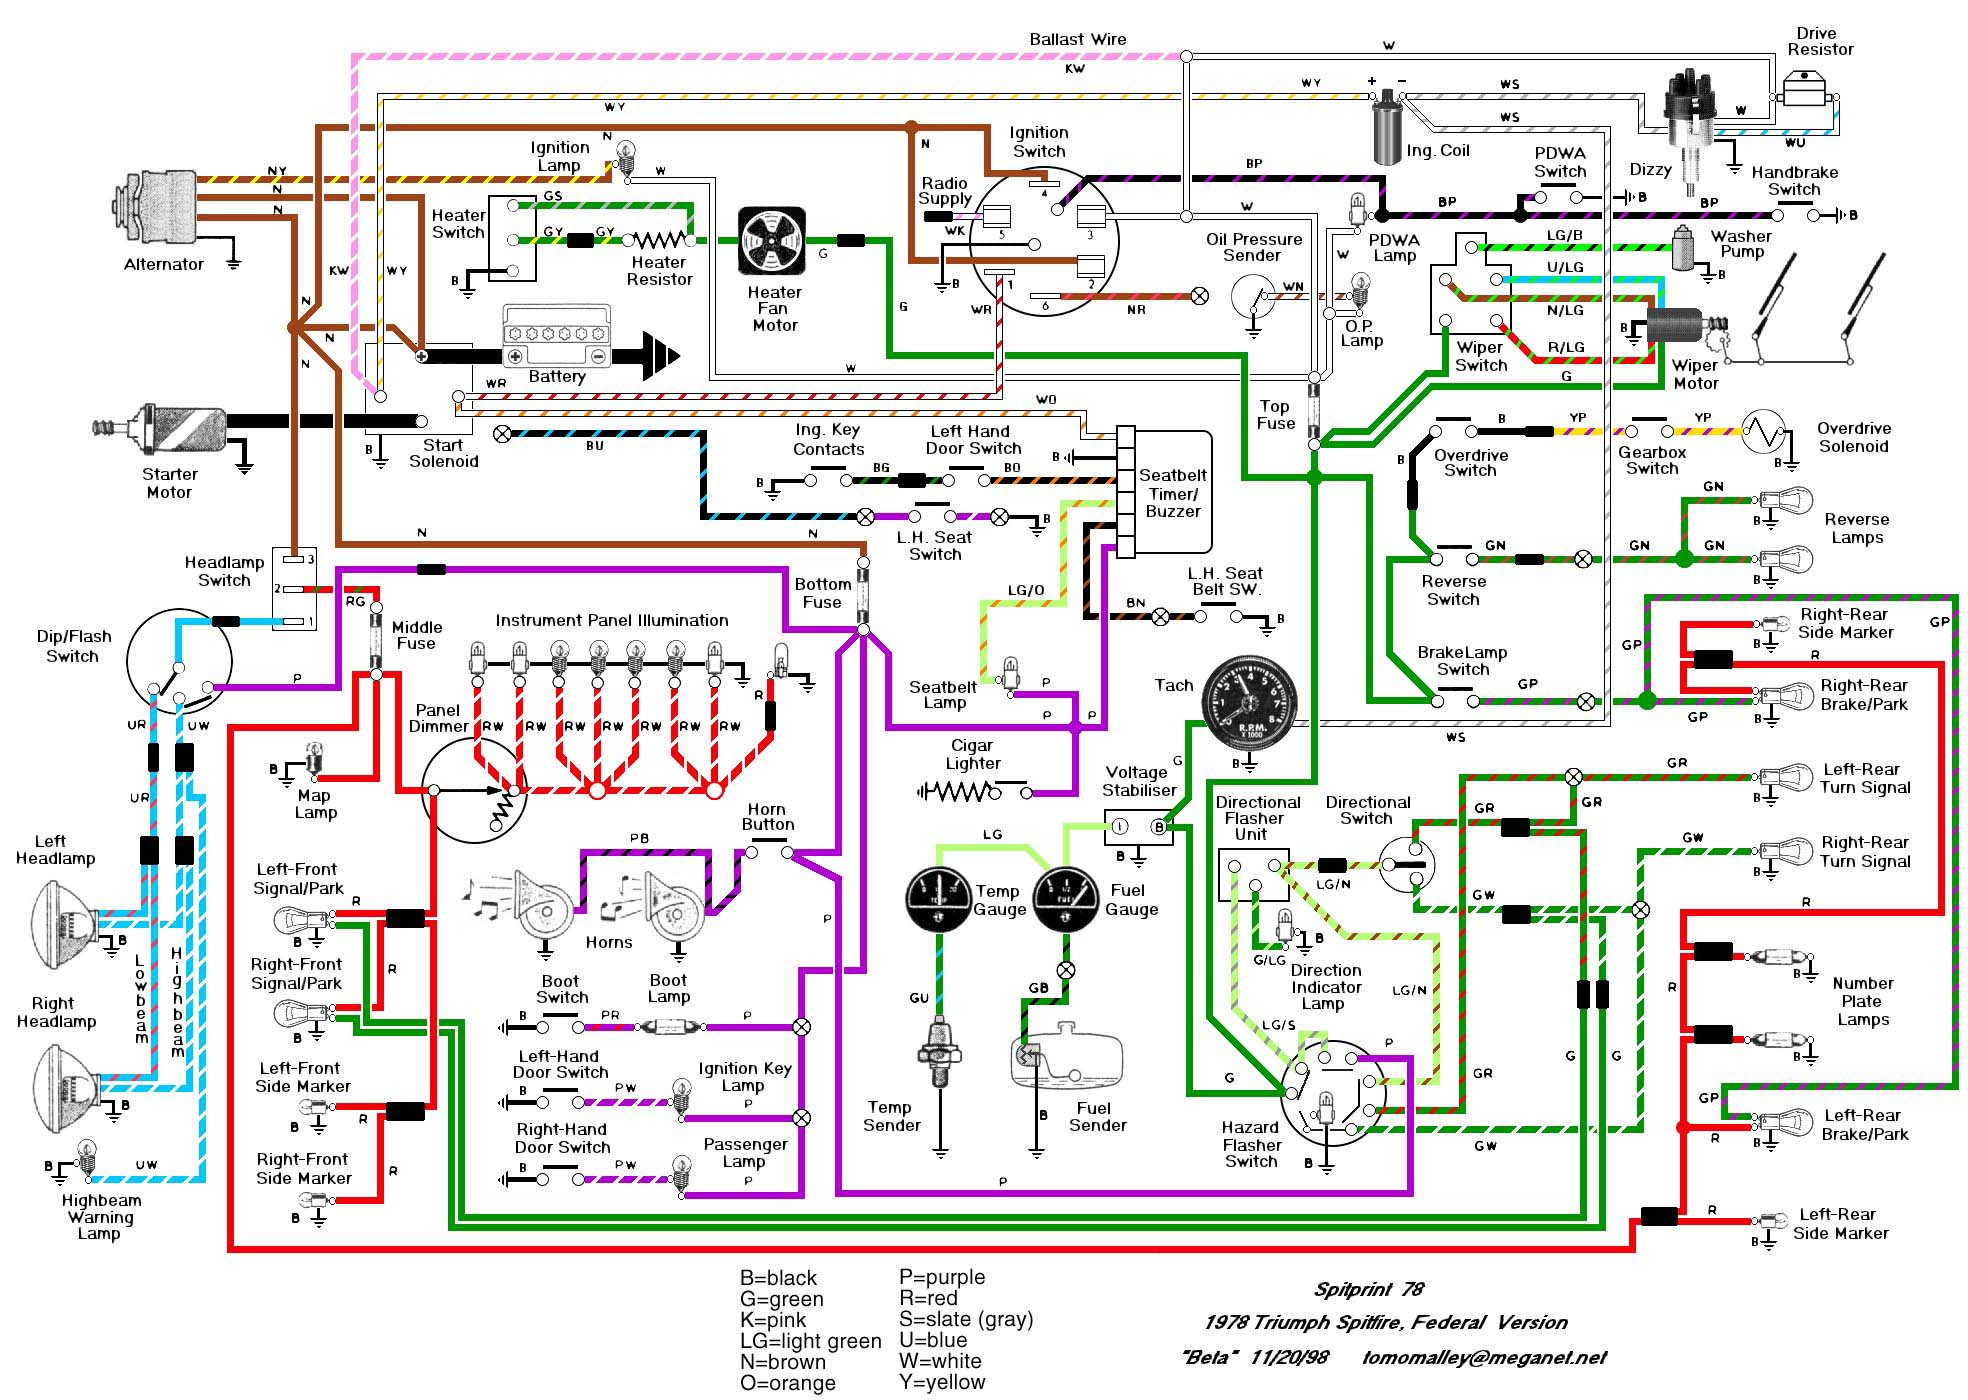 western snow plow wiring diagram #11 Wiring-Diagram Western Snow Plow Contractor western snow plow wiring diagram